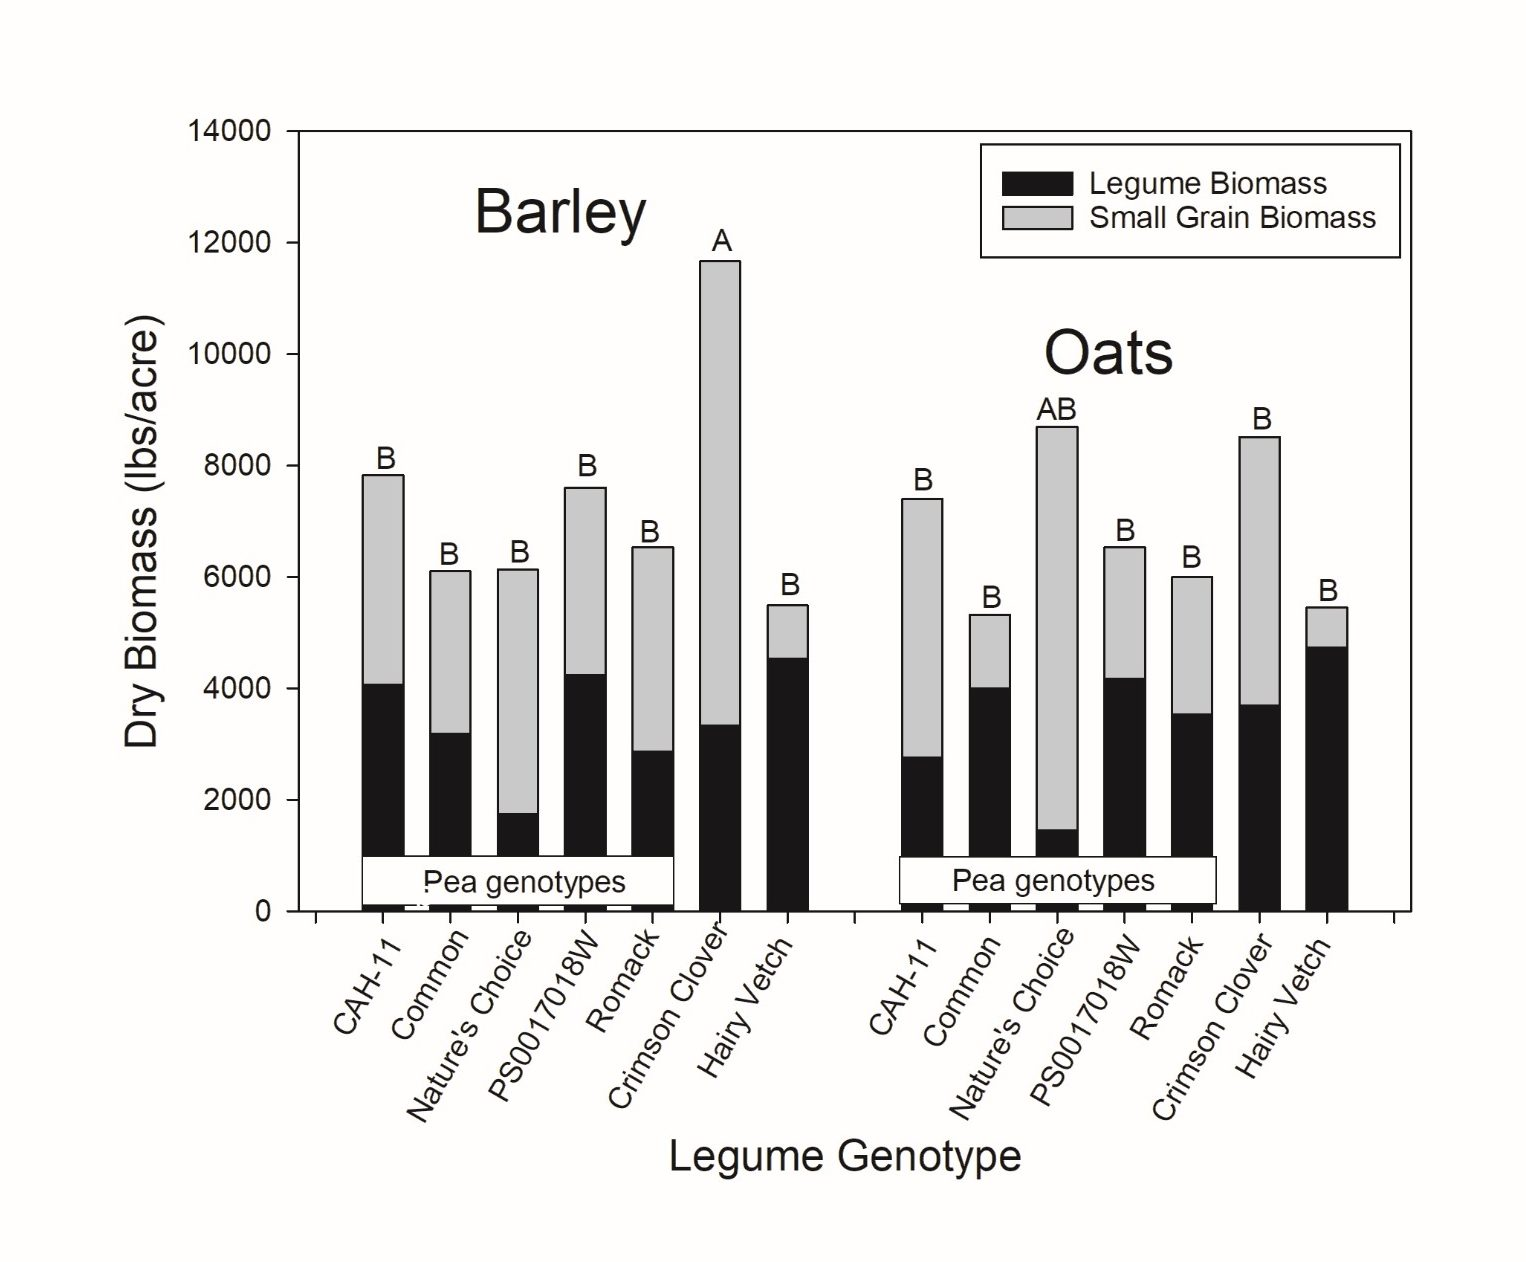 Biomass Production With Legume And Small Grain Cover Crop